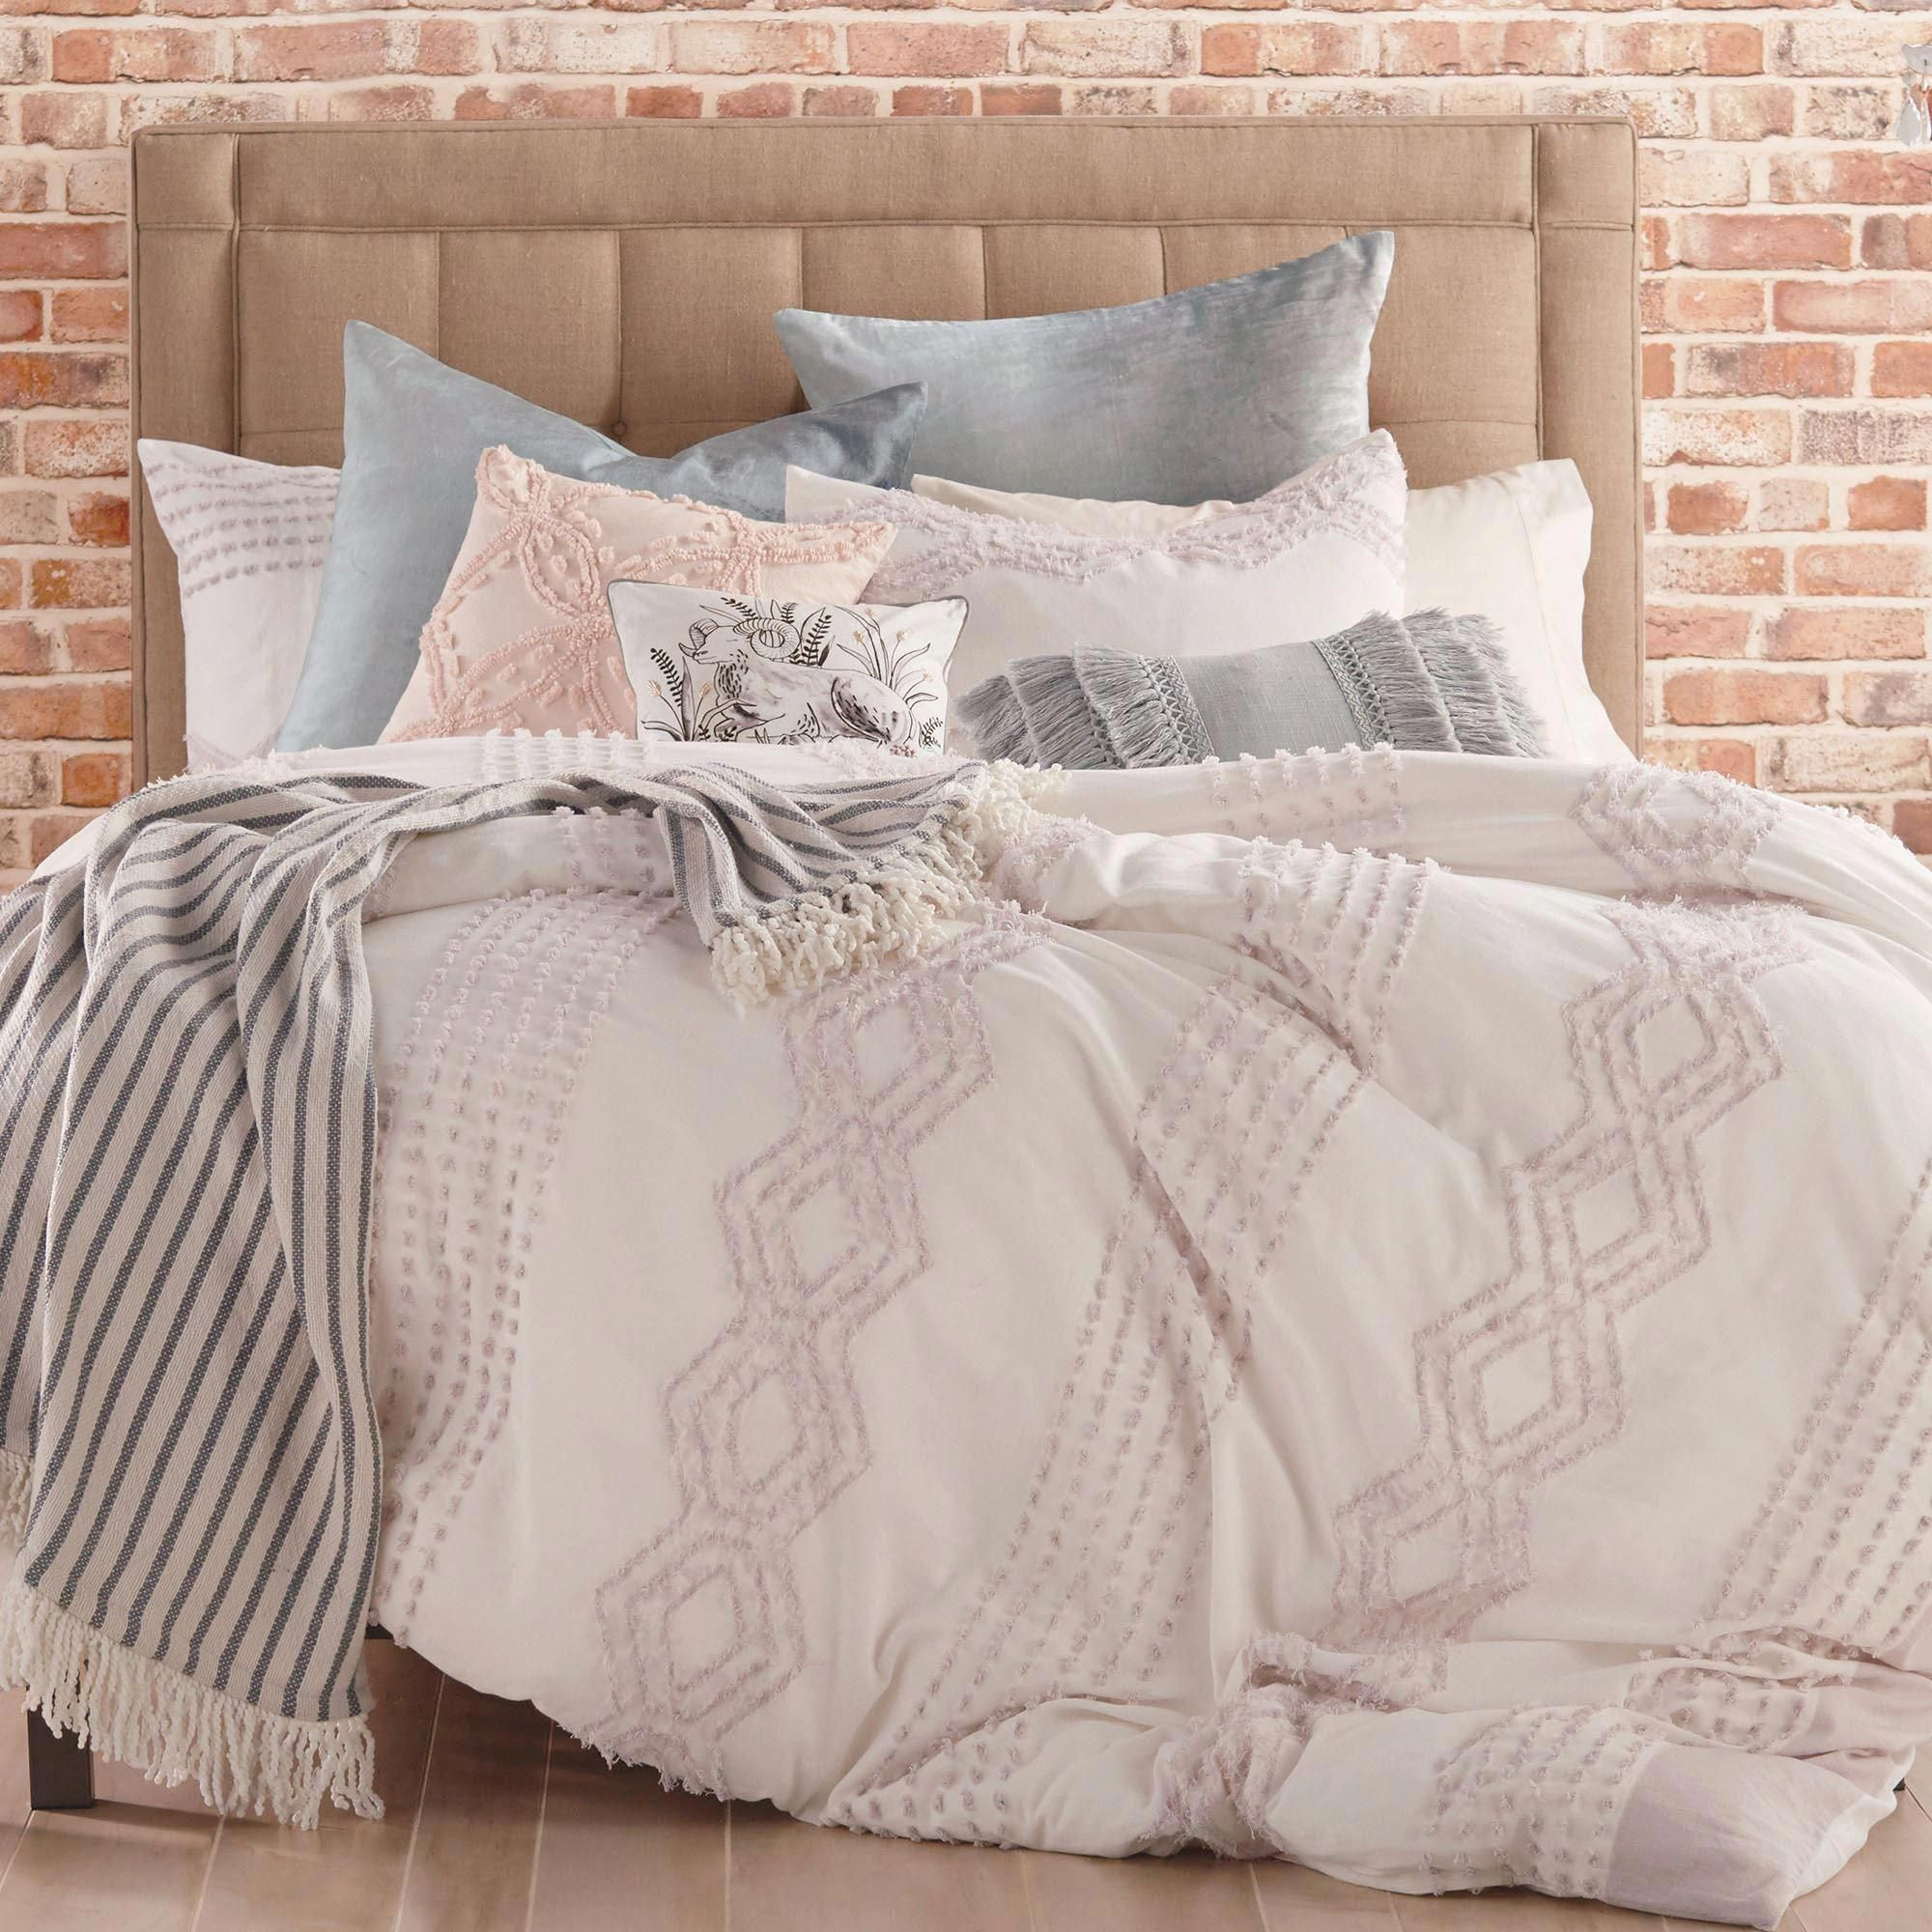 Where To Buy Bedding In London Key 6793298671 Beautifulbedlinenideas Comforter Sets Urban Outfitters Bedroom Bedding Bed Linens Luxury